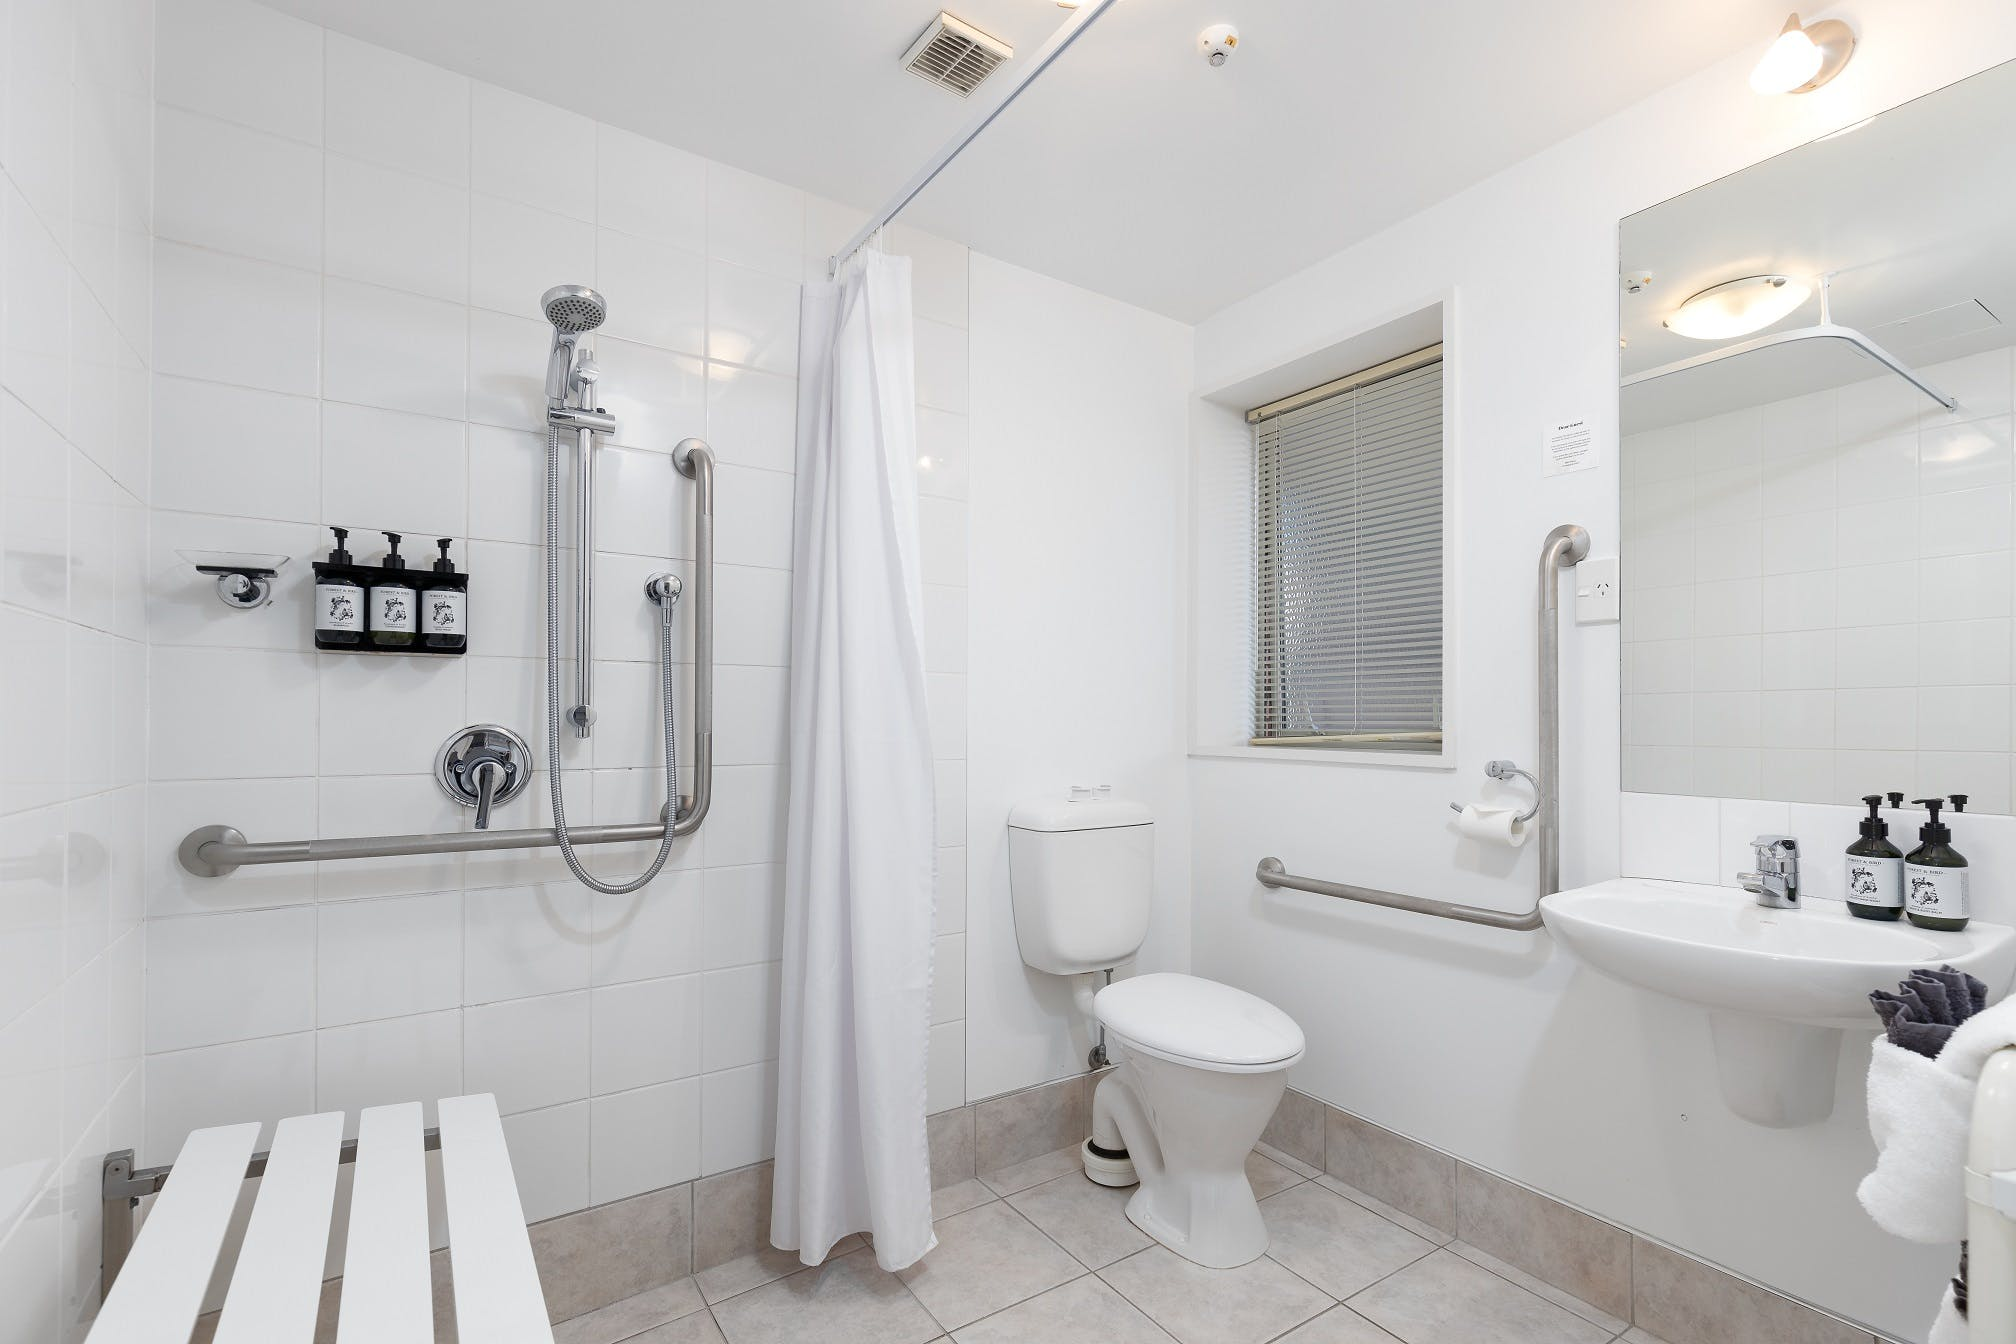 one bedroom access apartment studio chelsea park motor lodge rooms bathroom Nelson